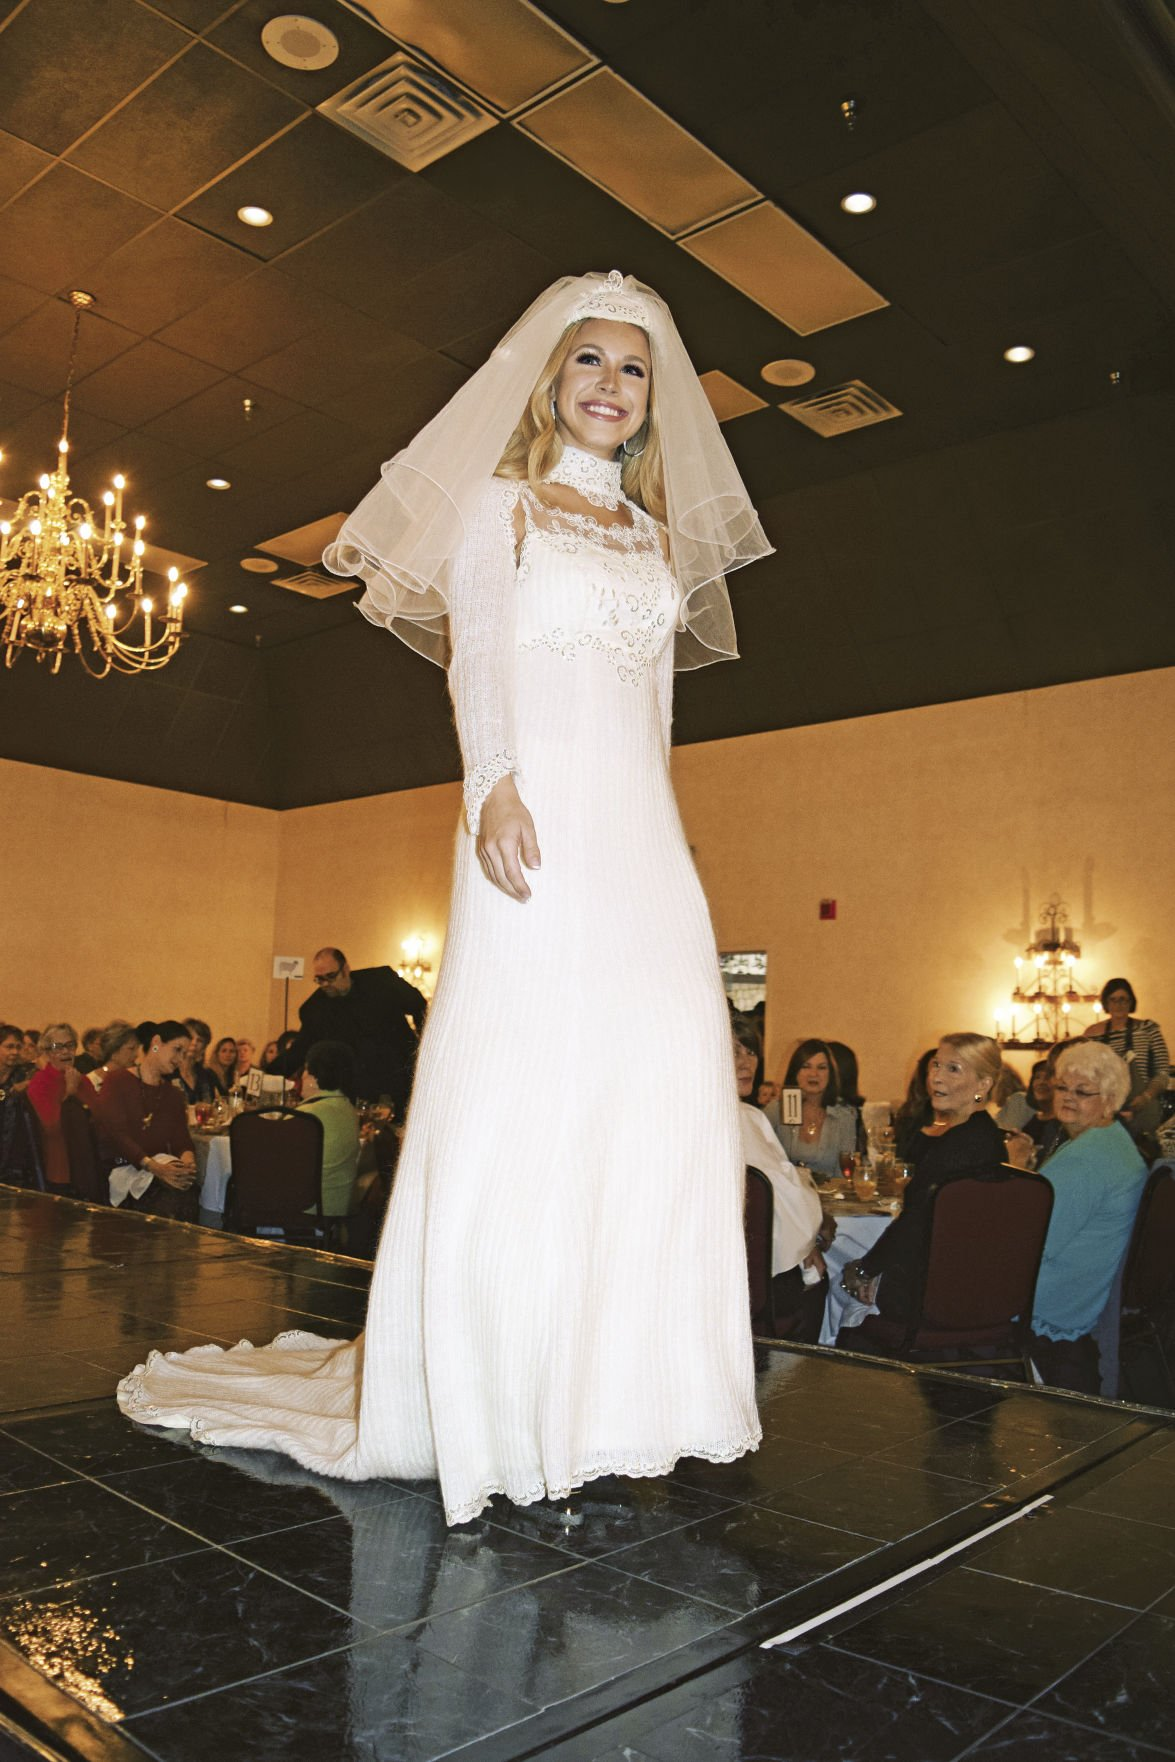 49th annual style show, lunch hosted by HCS&GO | News